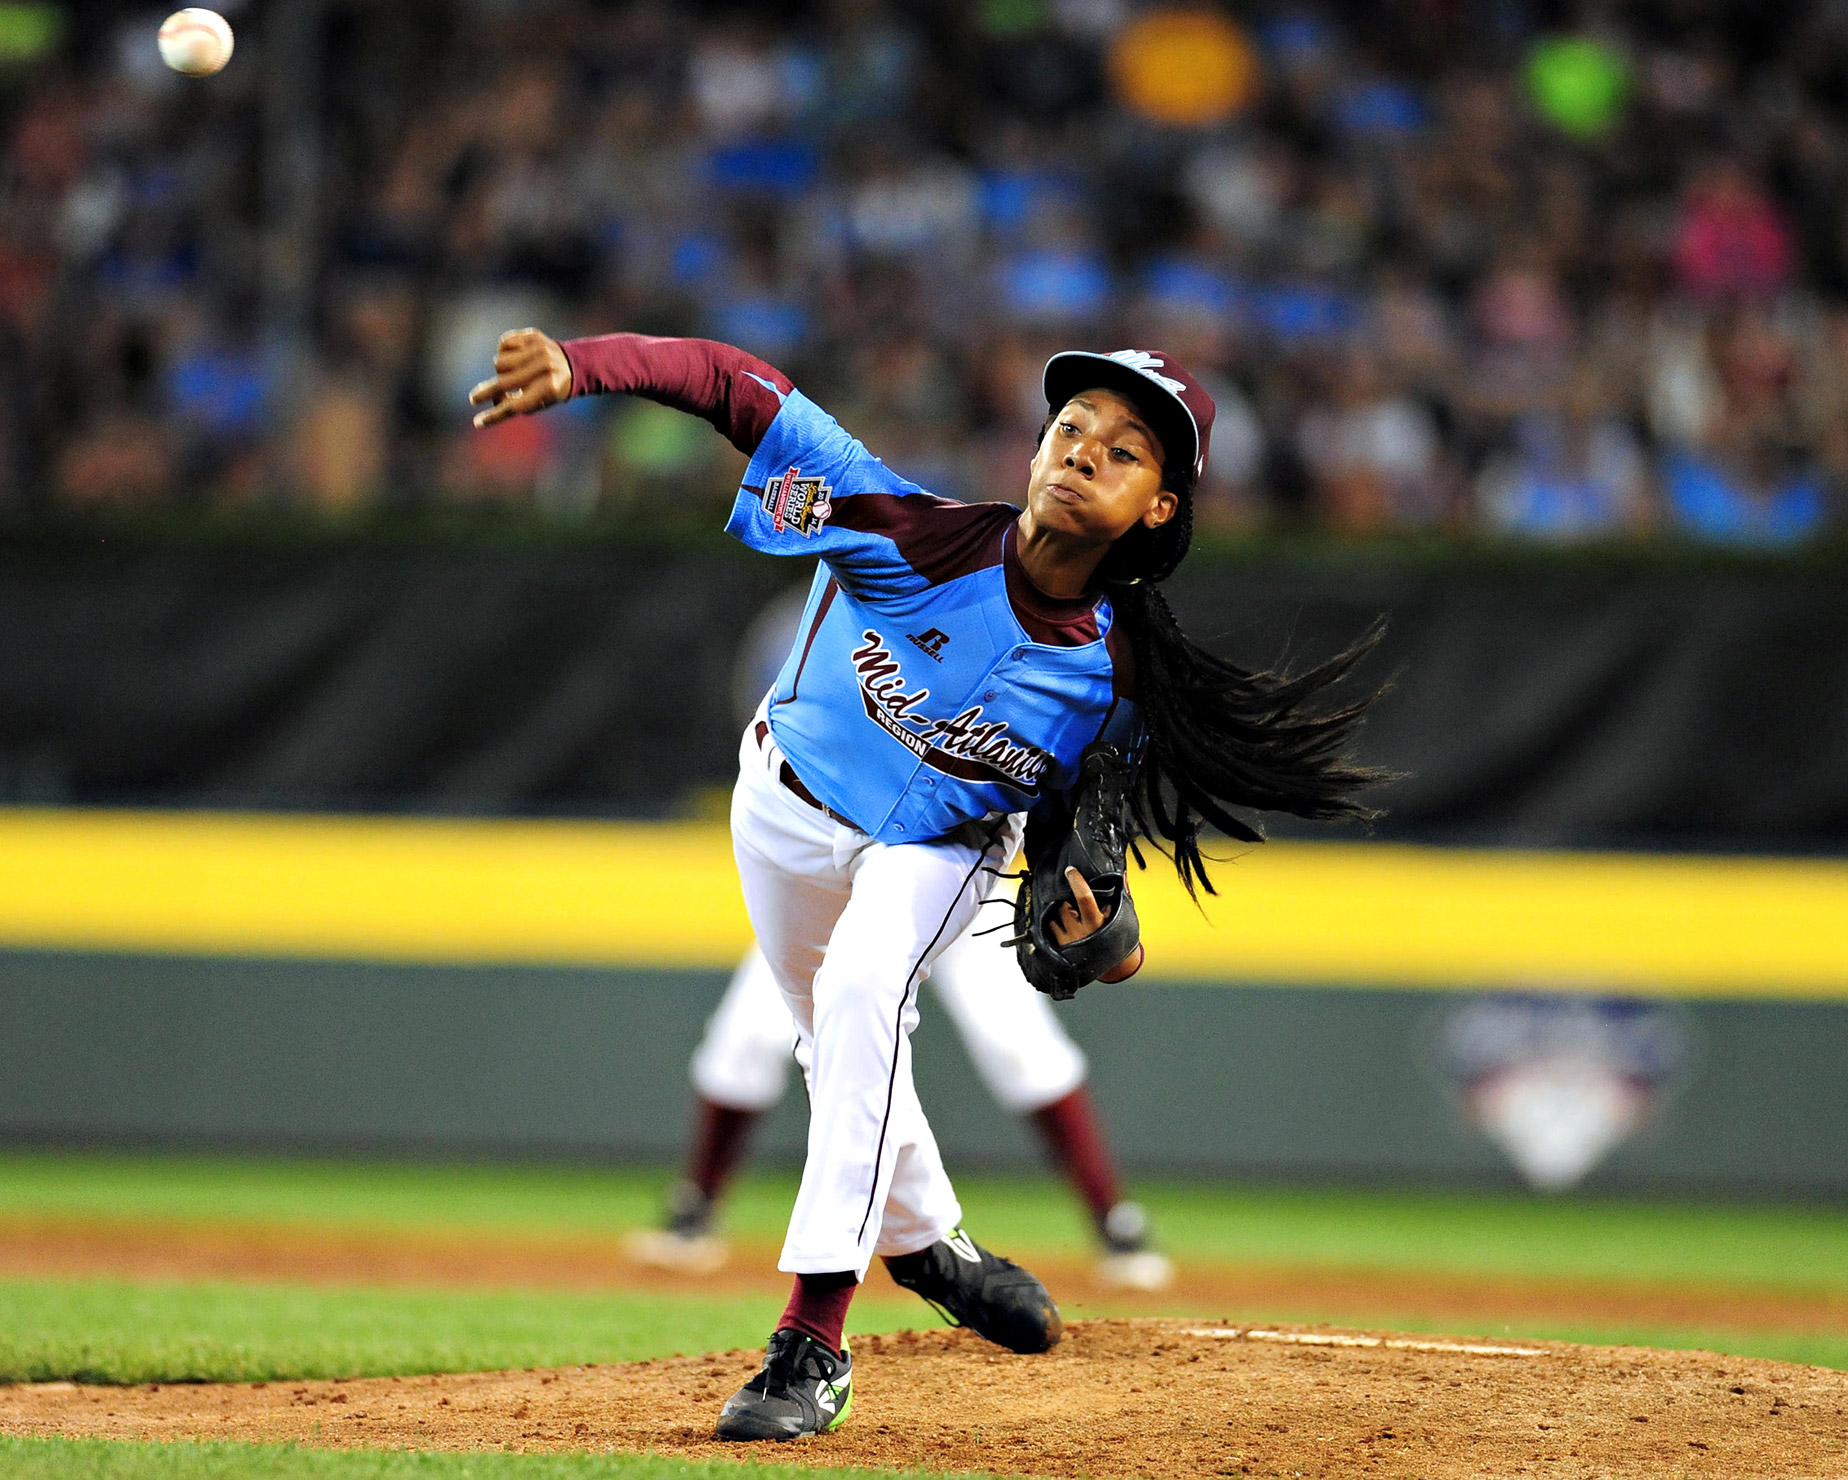 Philadelphia's Mo'ne Davis was the center of attention when she took the mound against Las Vegas at the Little League World Series, but Las Vegas got to her early and scored an 8-1 win.